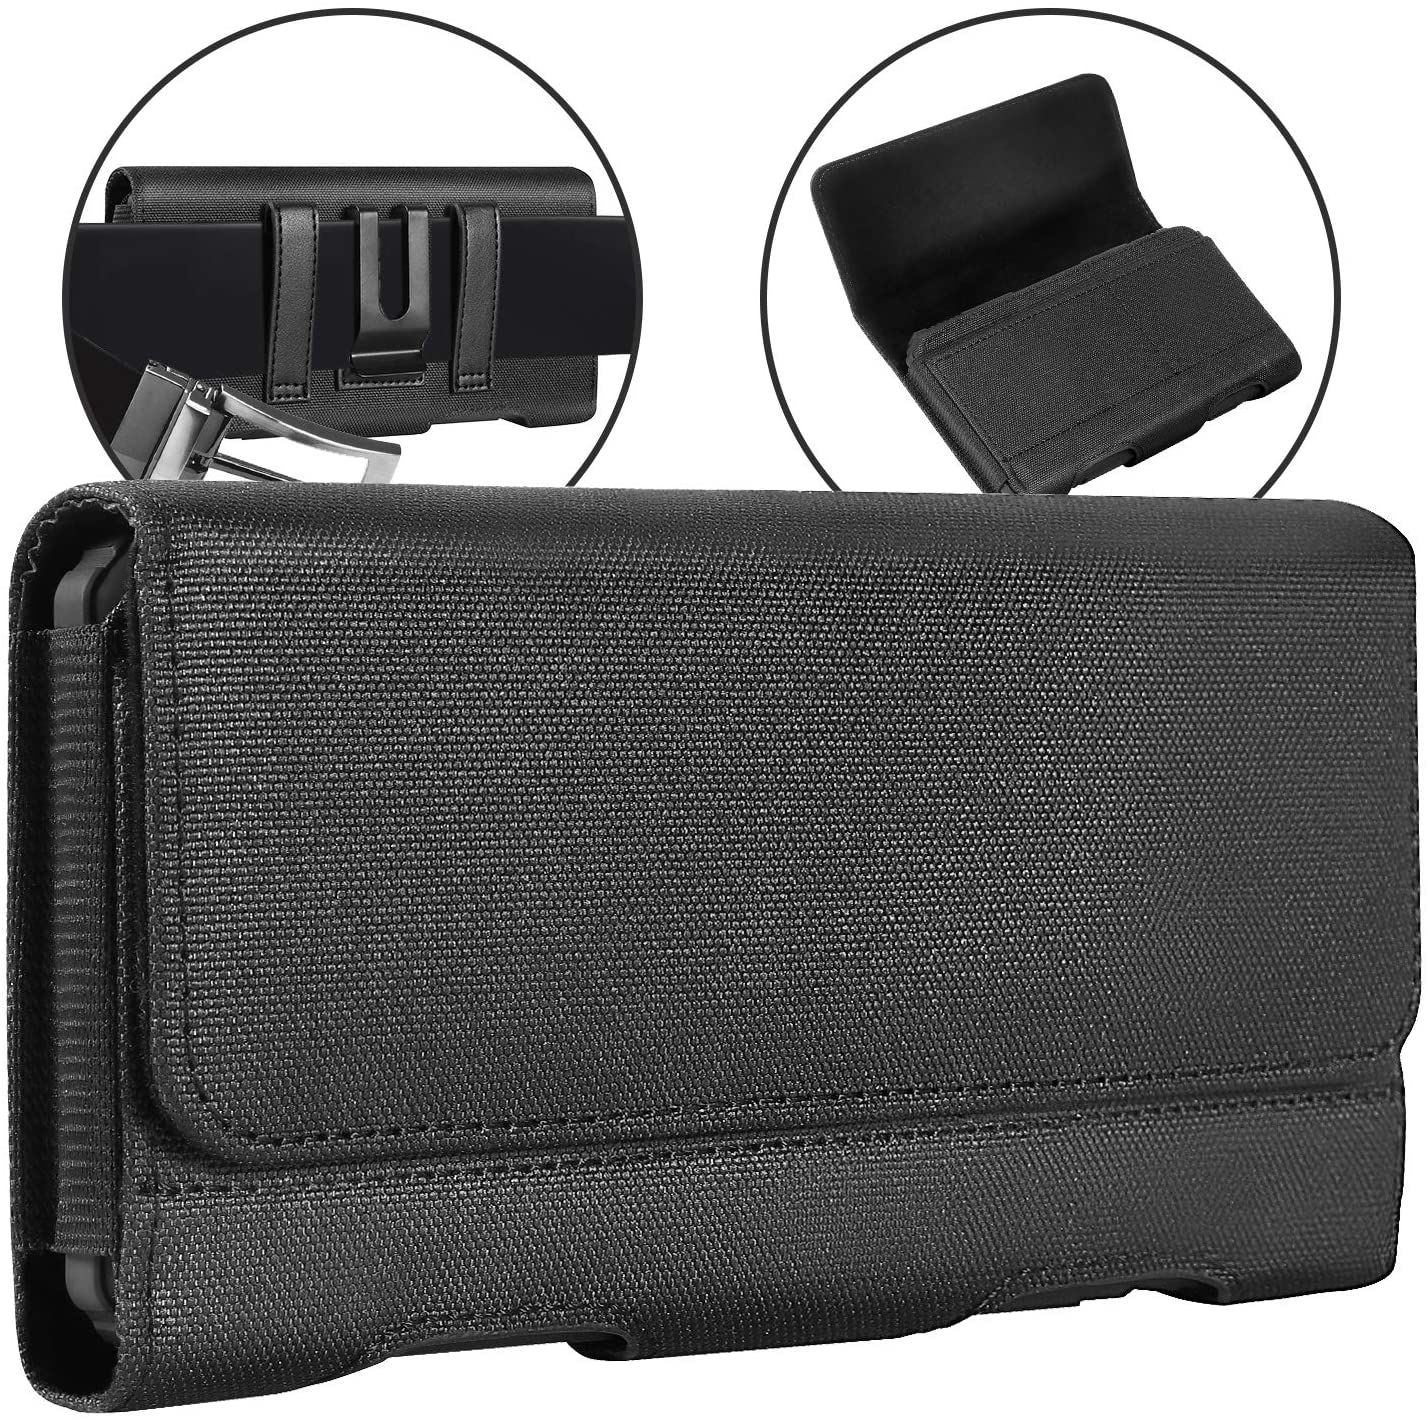 Mopaclle Galaxy S10 Plus Holster Case, Galaxy S20 Plus Belt Clip Case, Durable Nylon Cell Phone Pouch Belt Holder Cover for Samsung Galaxy S10 Plus/S9+/S8+ (Fits Phone with Case On) Black